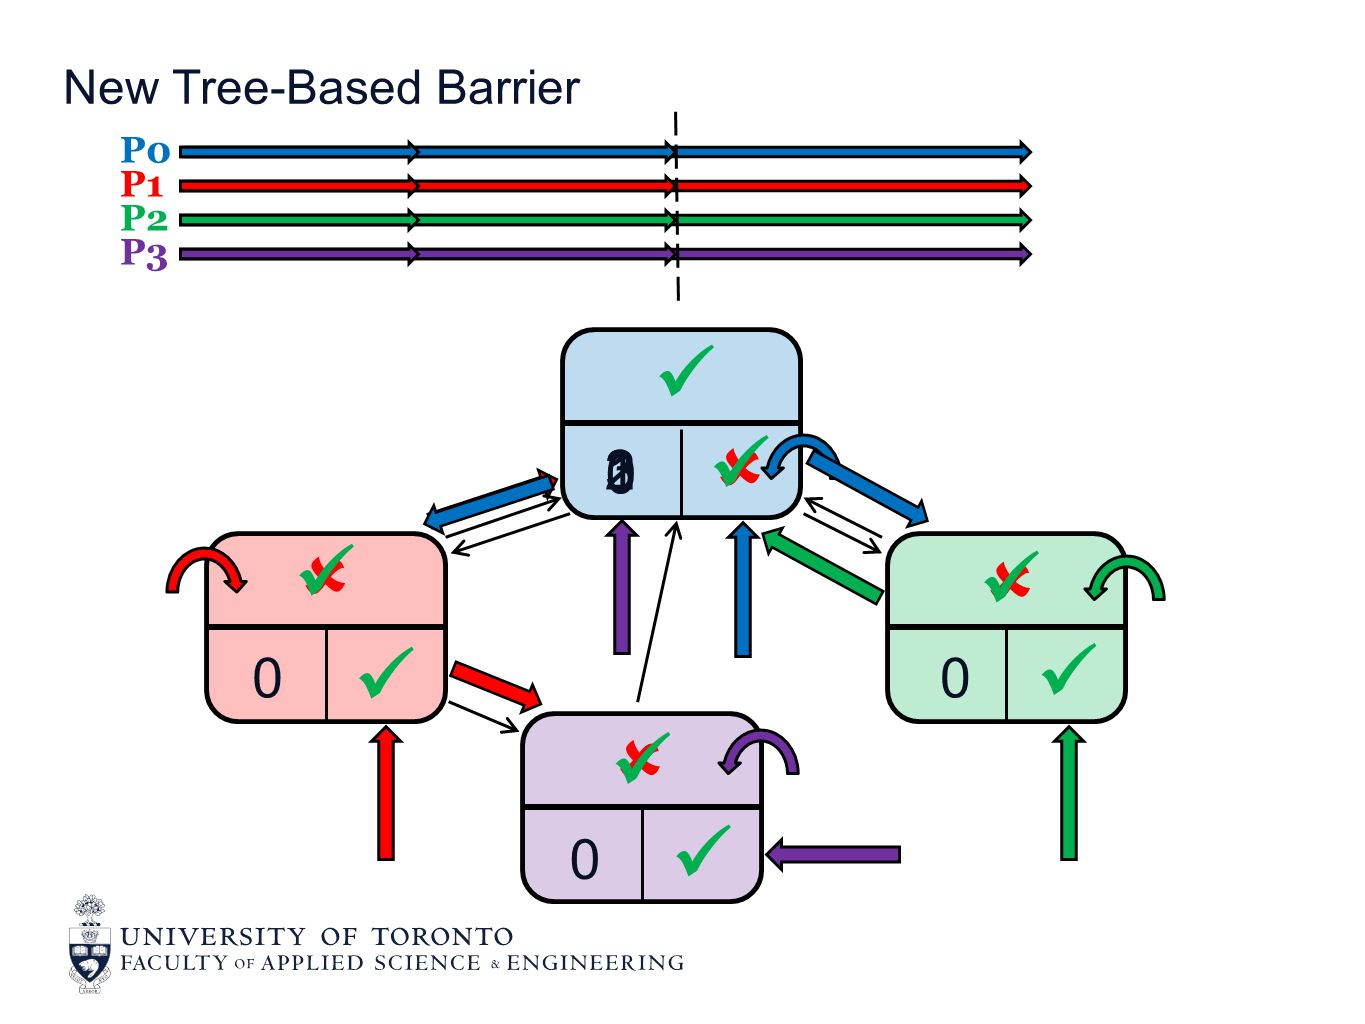 New Tree-Based Barrier P0 P1 P2 P3 0 1 2  0 0 0    3